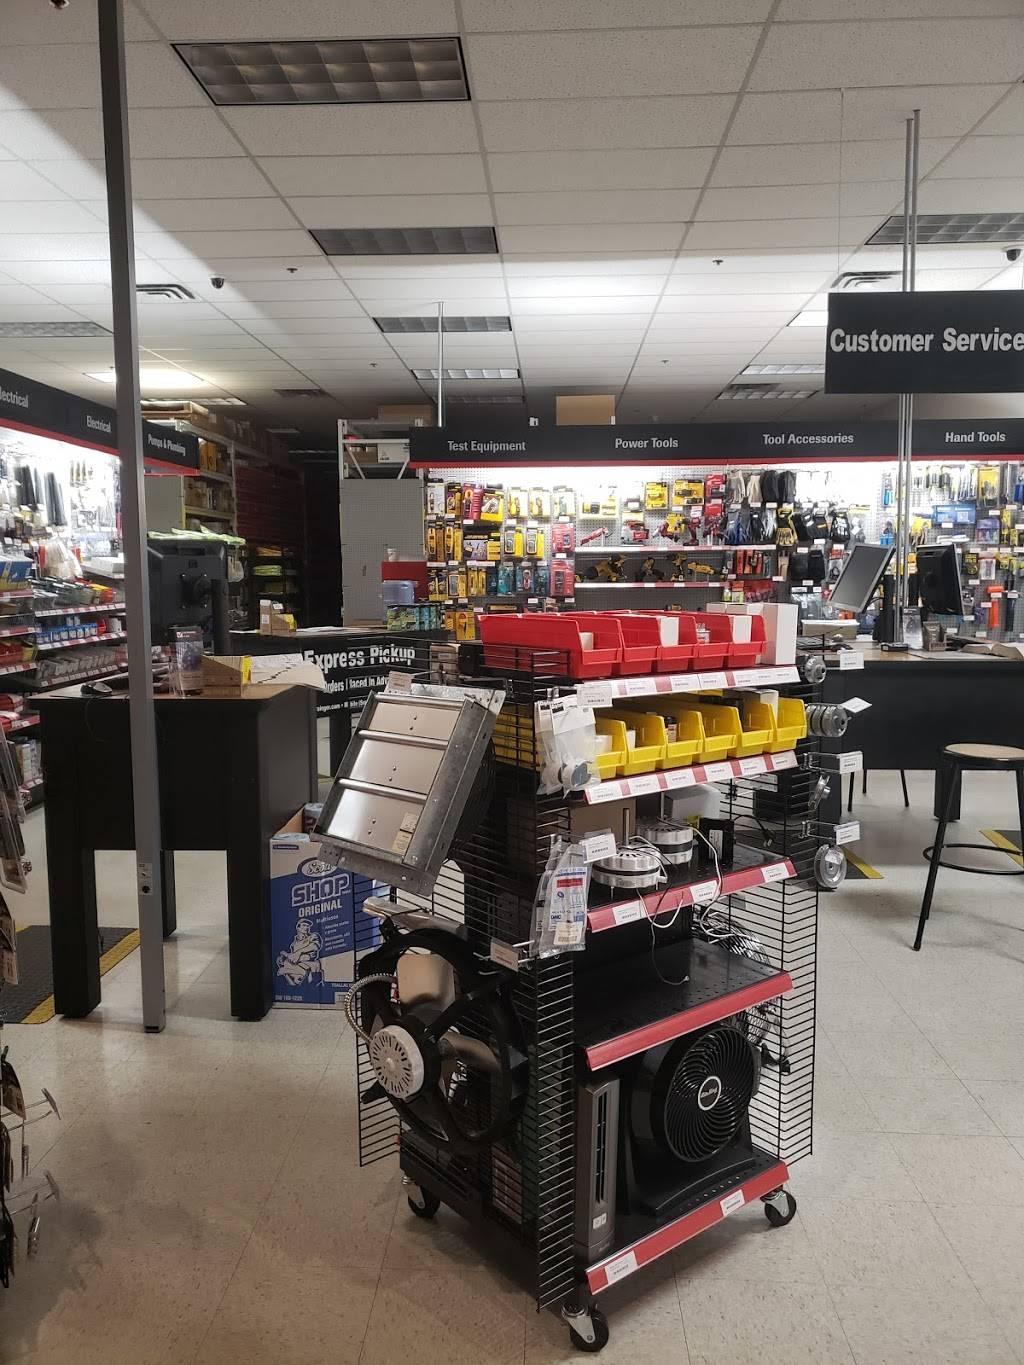 Grainger Industrial Supply - store  | Photo 1 of 5 | Address: 6412 Tupelo Dr G, Citrus Heights, CA 95621, USA | Phone: (800) 472-4643